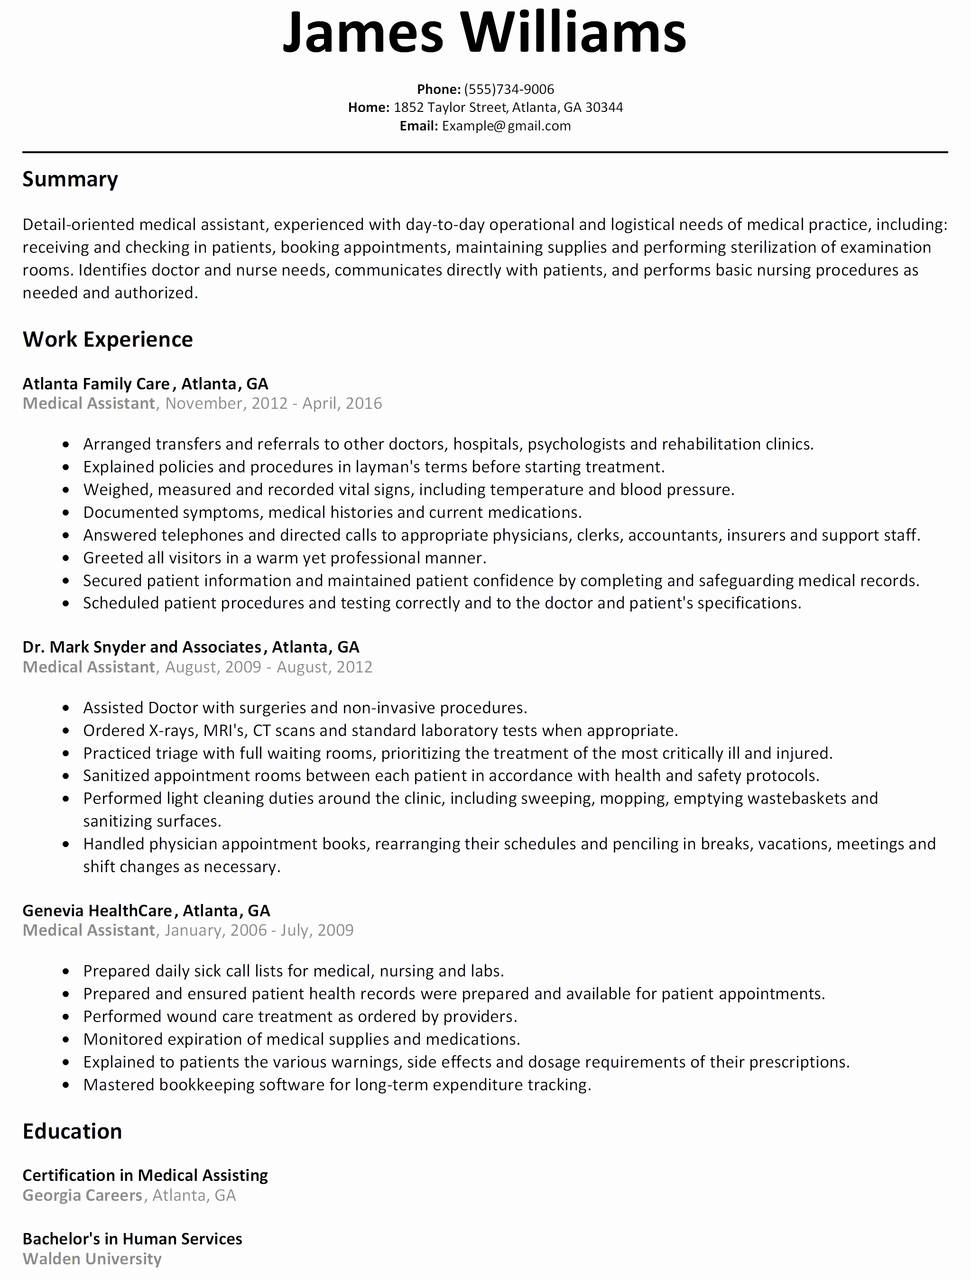 Resume Template Word Download New Free Resume Templates Downloads